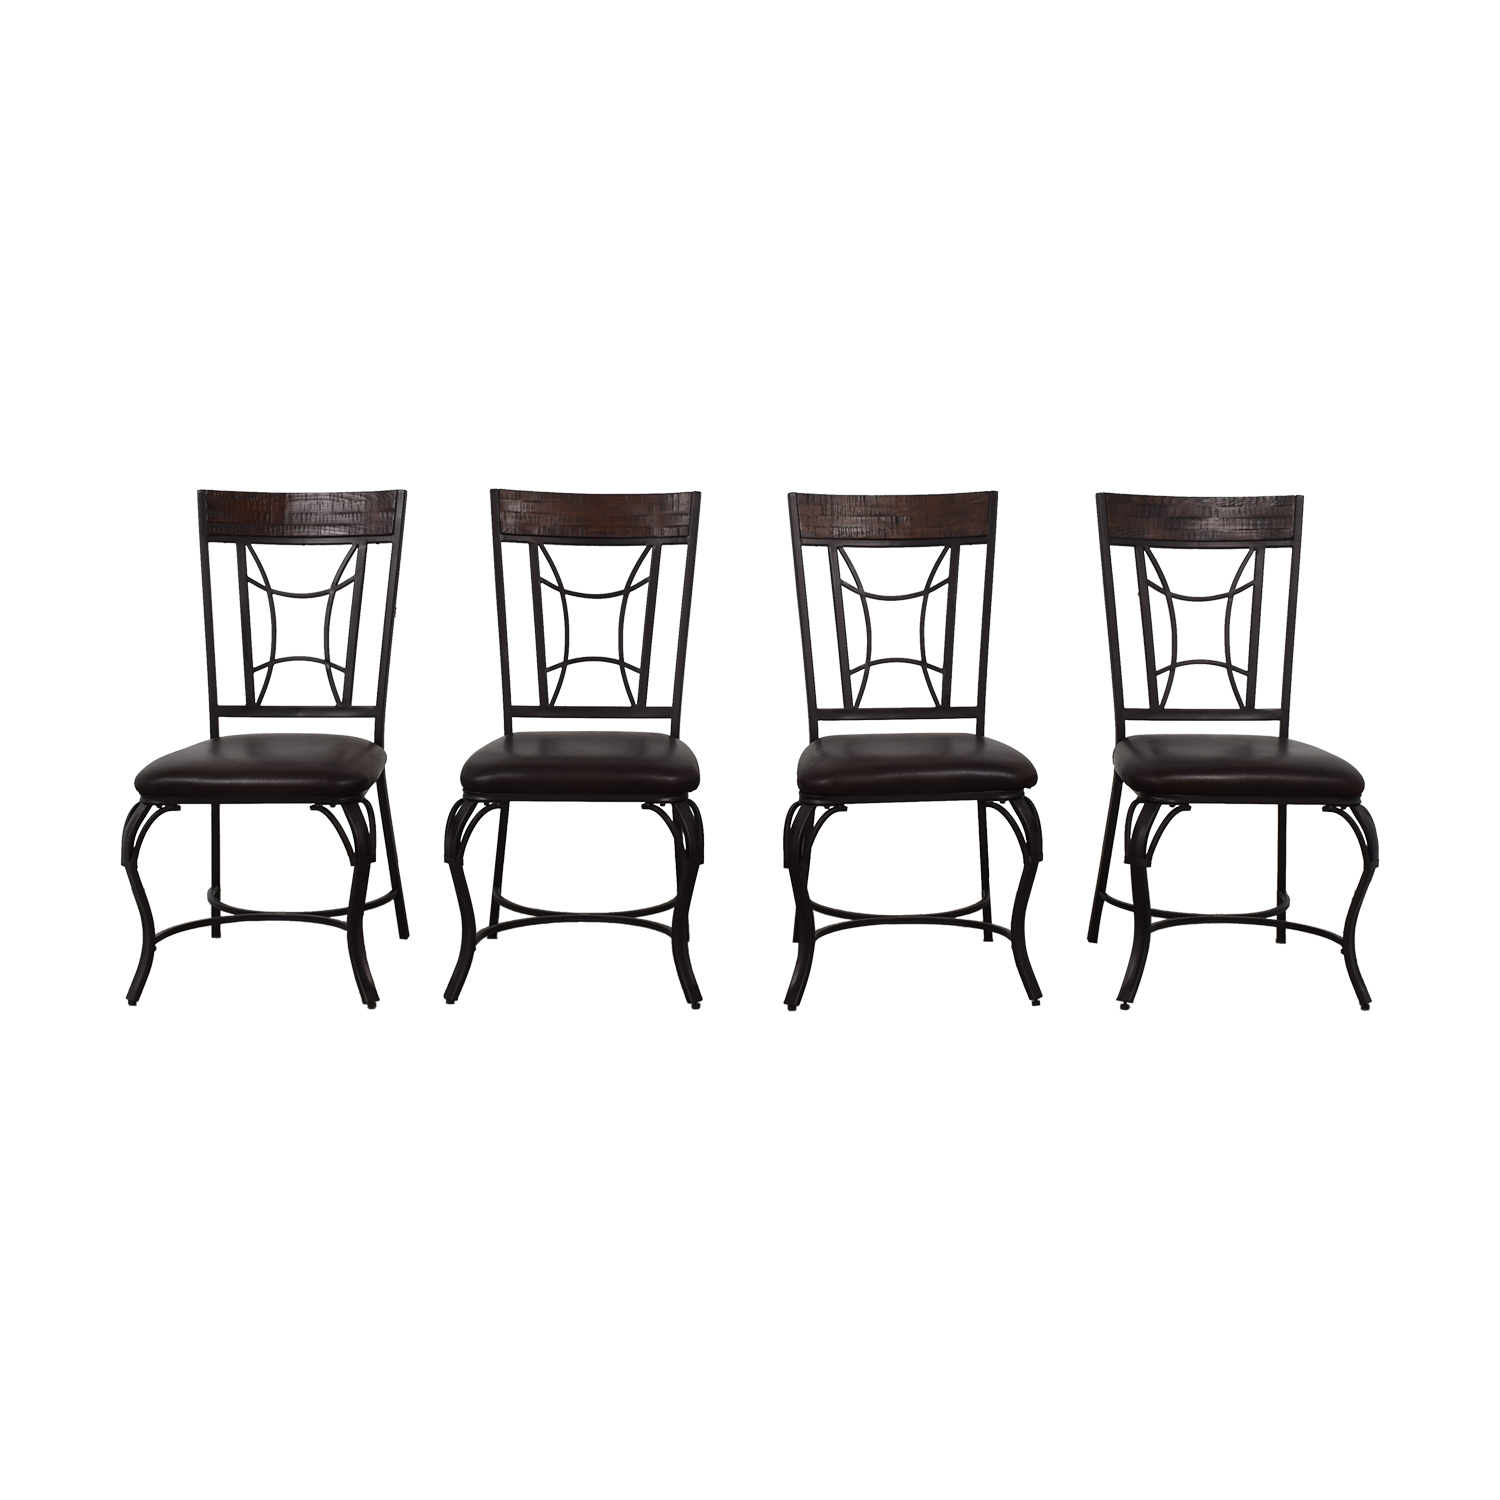 buy Hillsdale Furniture Hillsdale Furniture Dining Chairs online